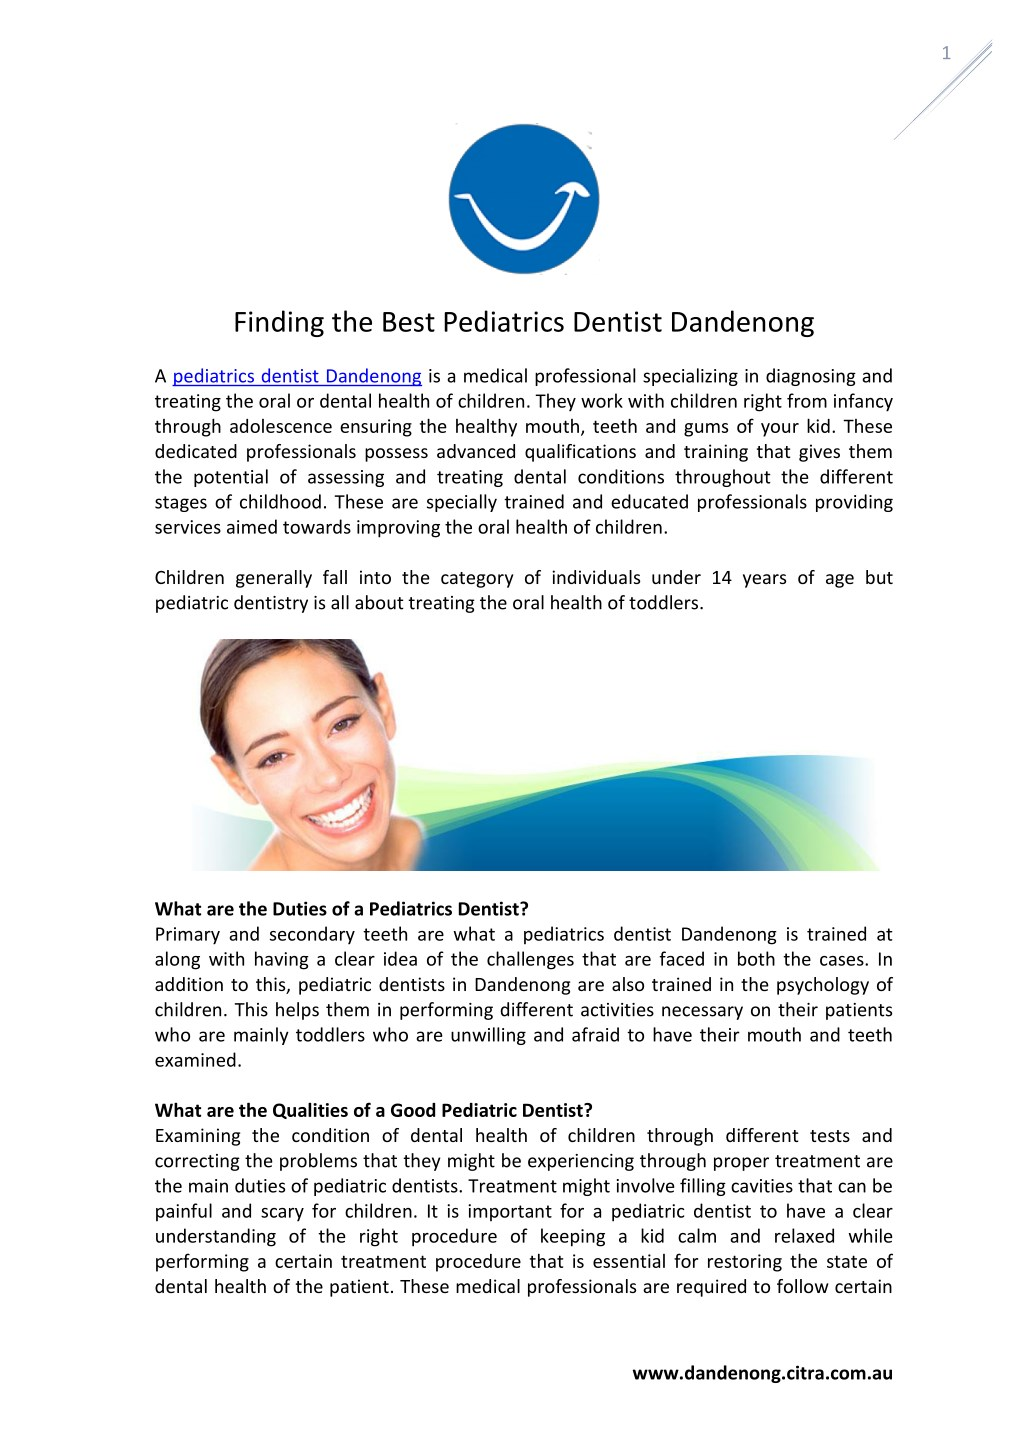 PPT - Finding the Best Pediatrics Dentist Dandenong